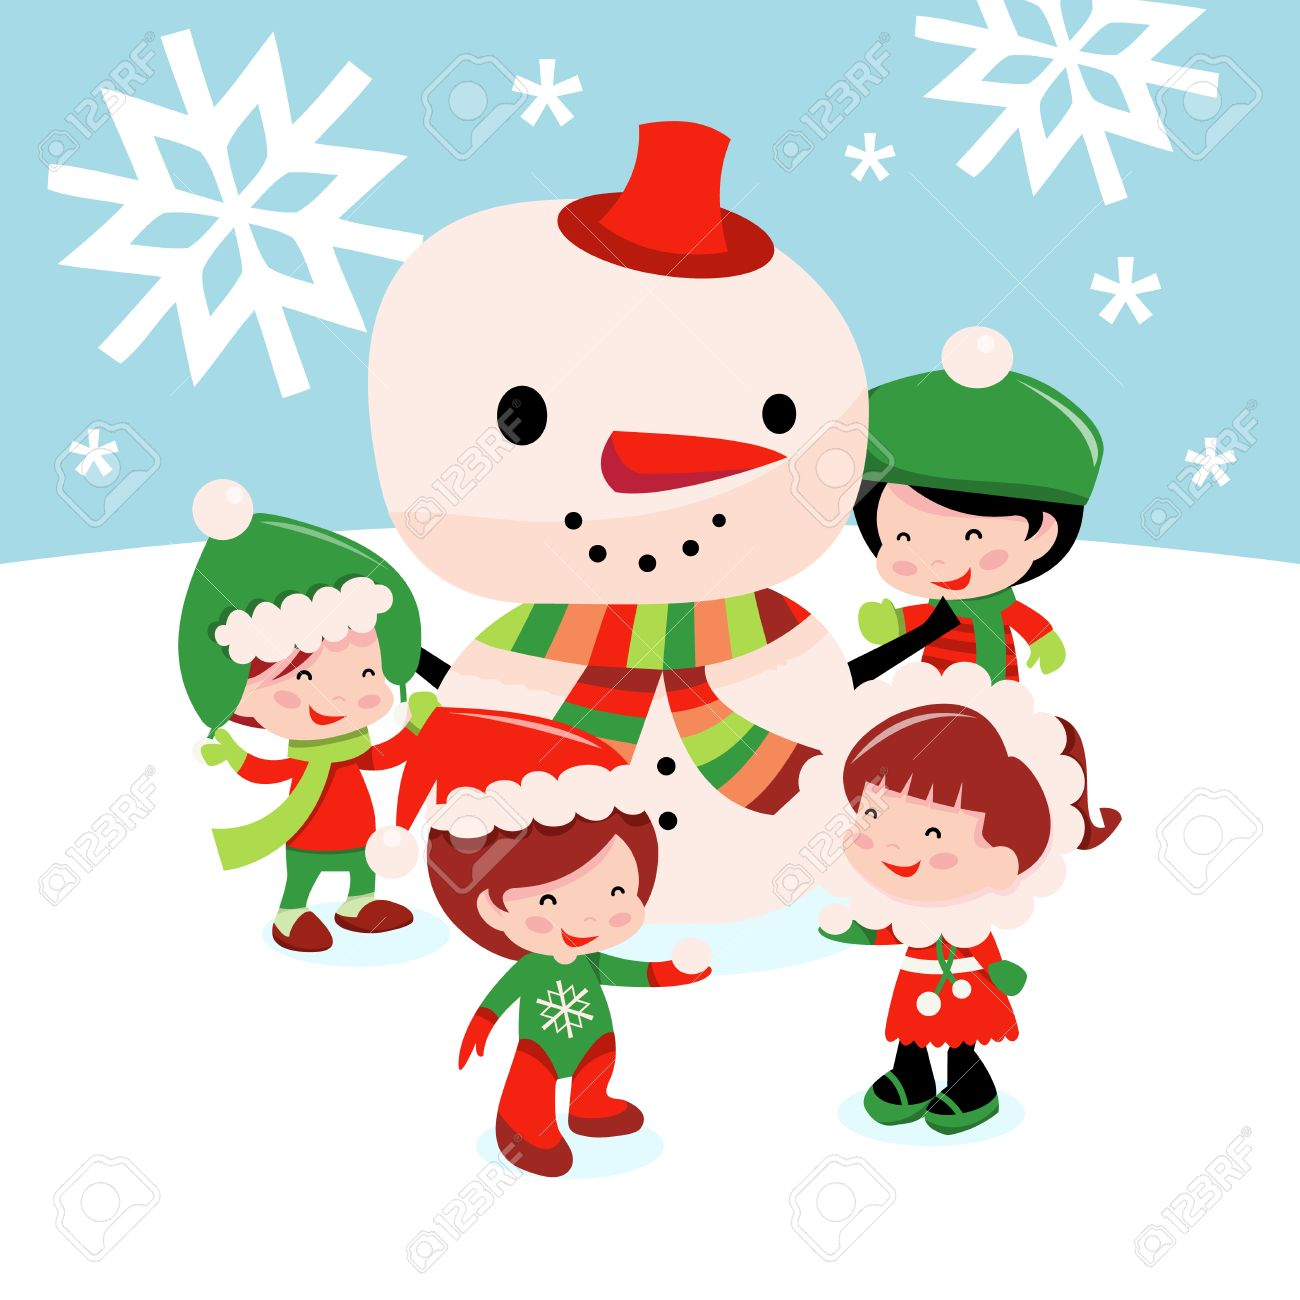 a cartoon vector illustration of a bunch of cute kids wearing